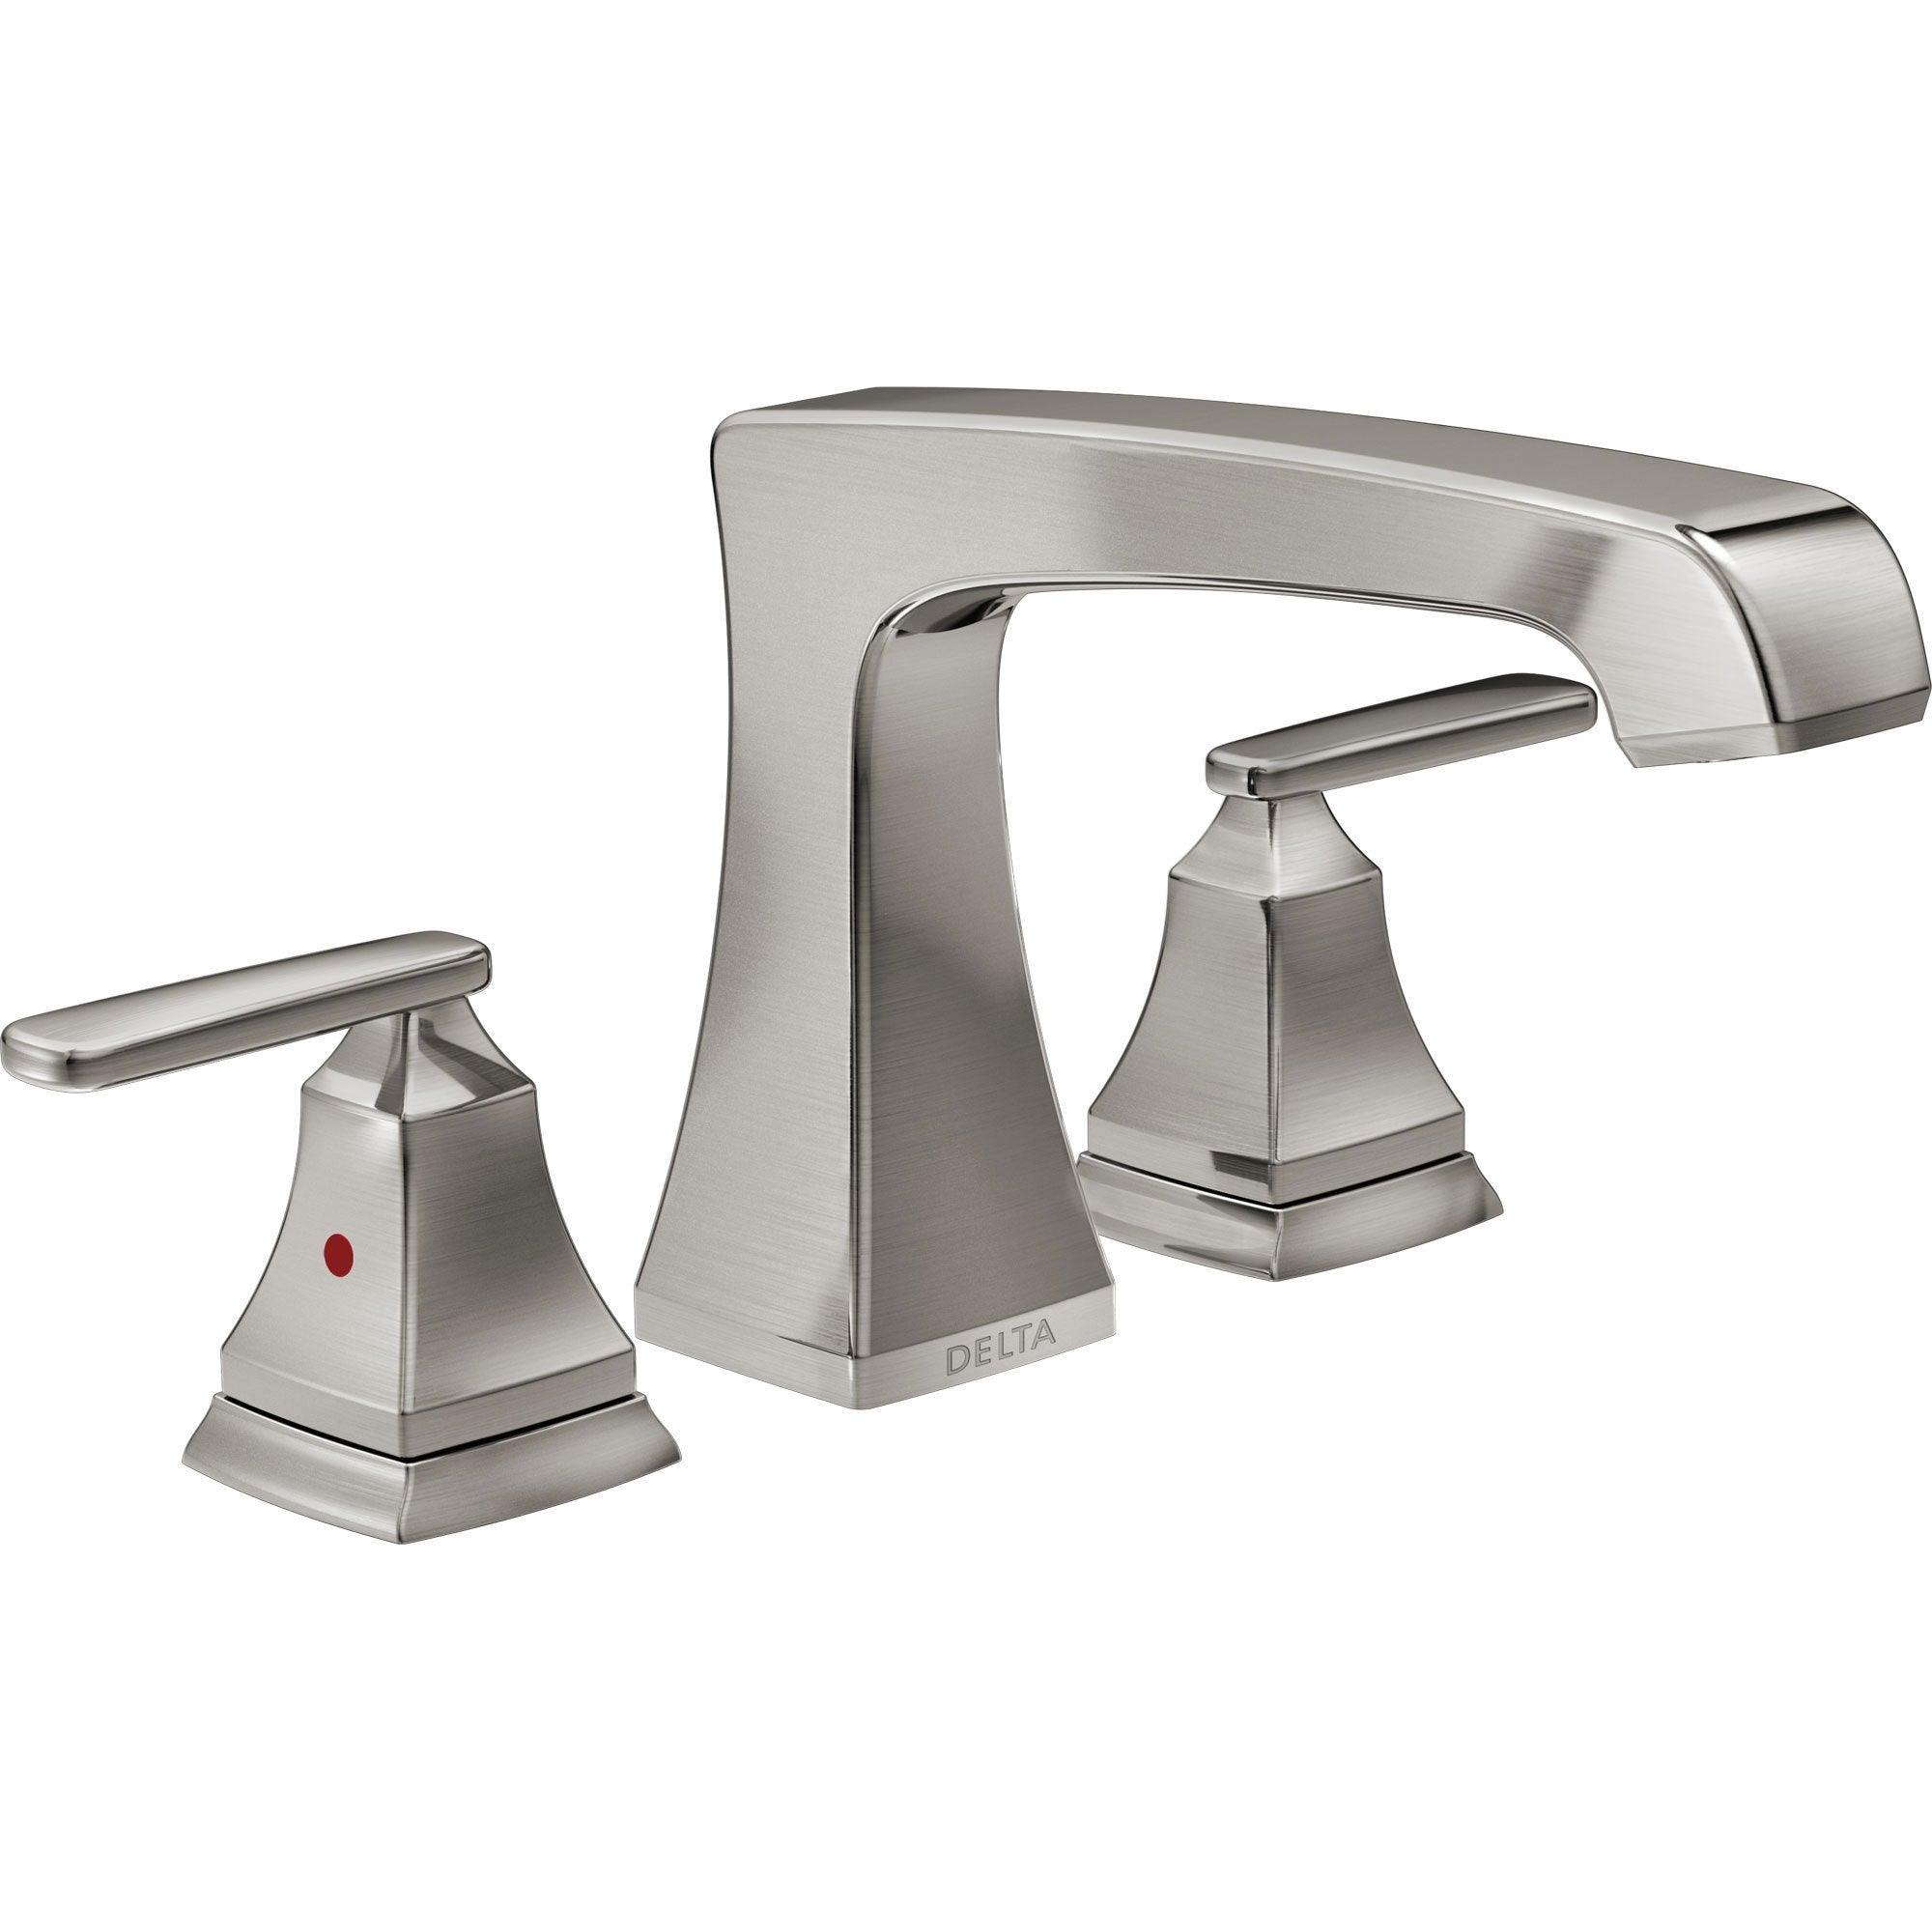 Delta Ashlyn Modern Stainless Steel Finish Roman Tub Filler Faucet INCLUDES Valve and Lever Handles D1092V